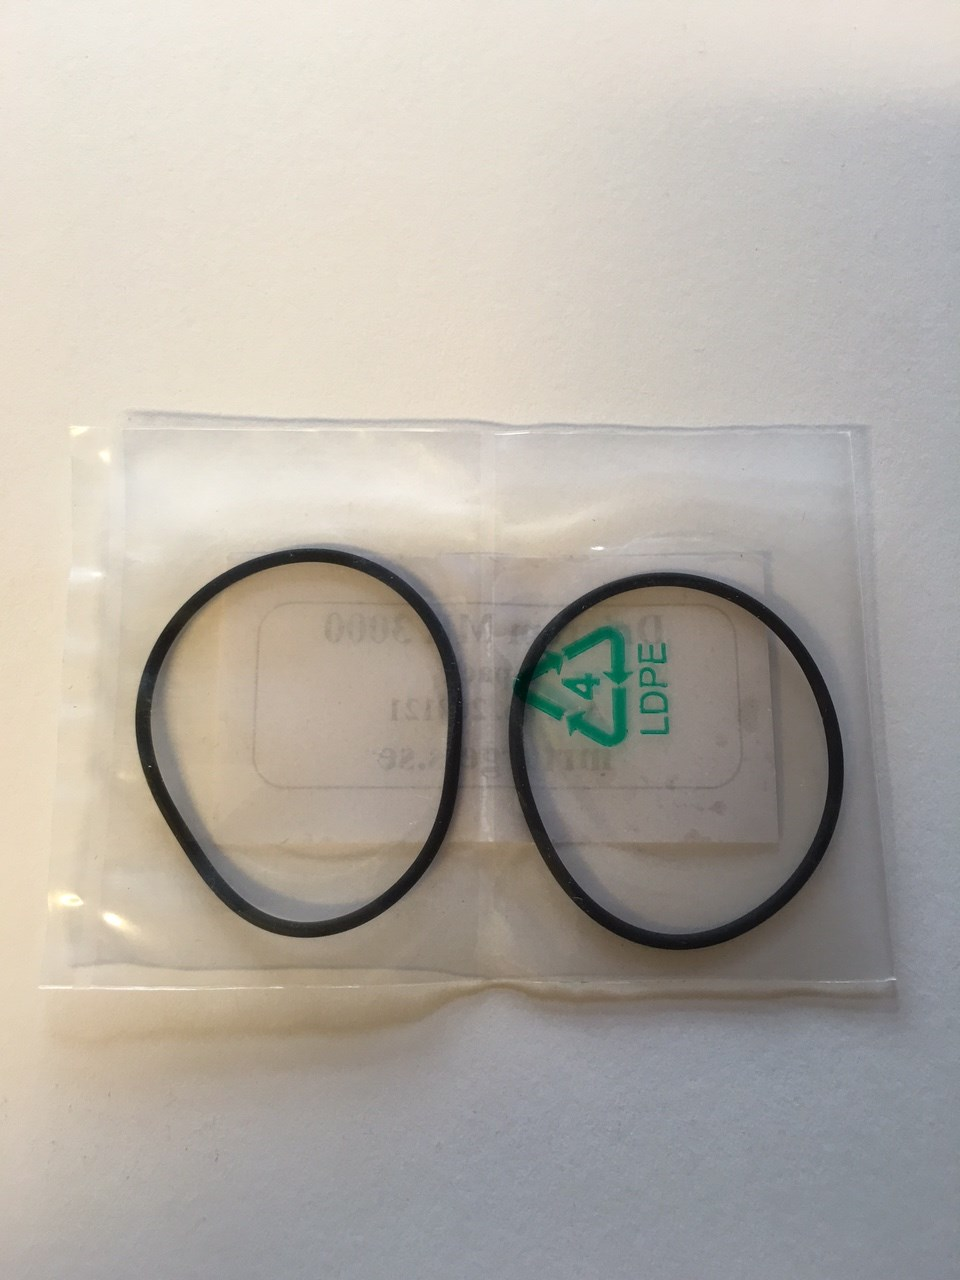 Drivremsats MR 3000